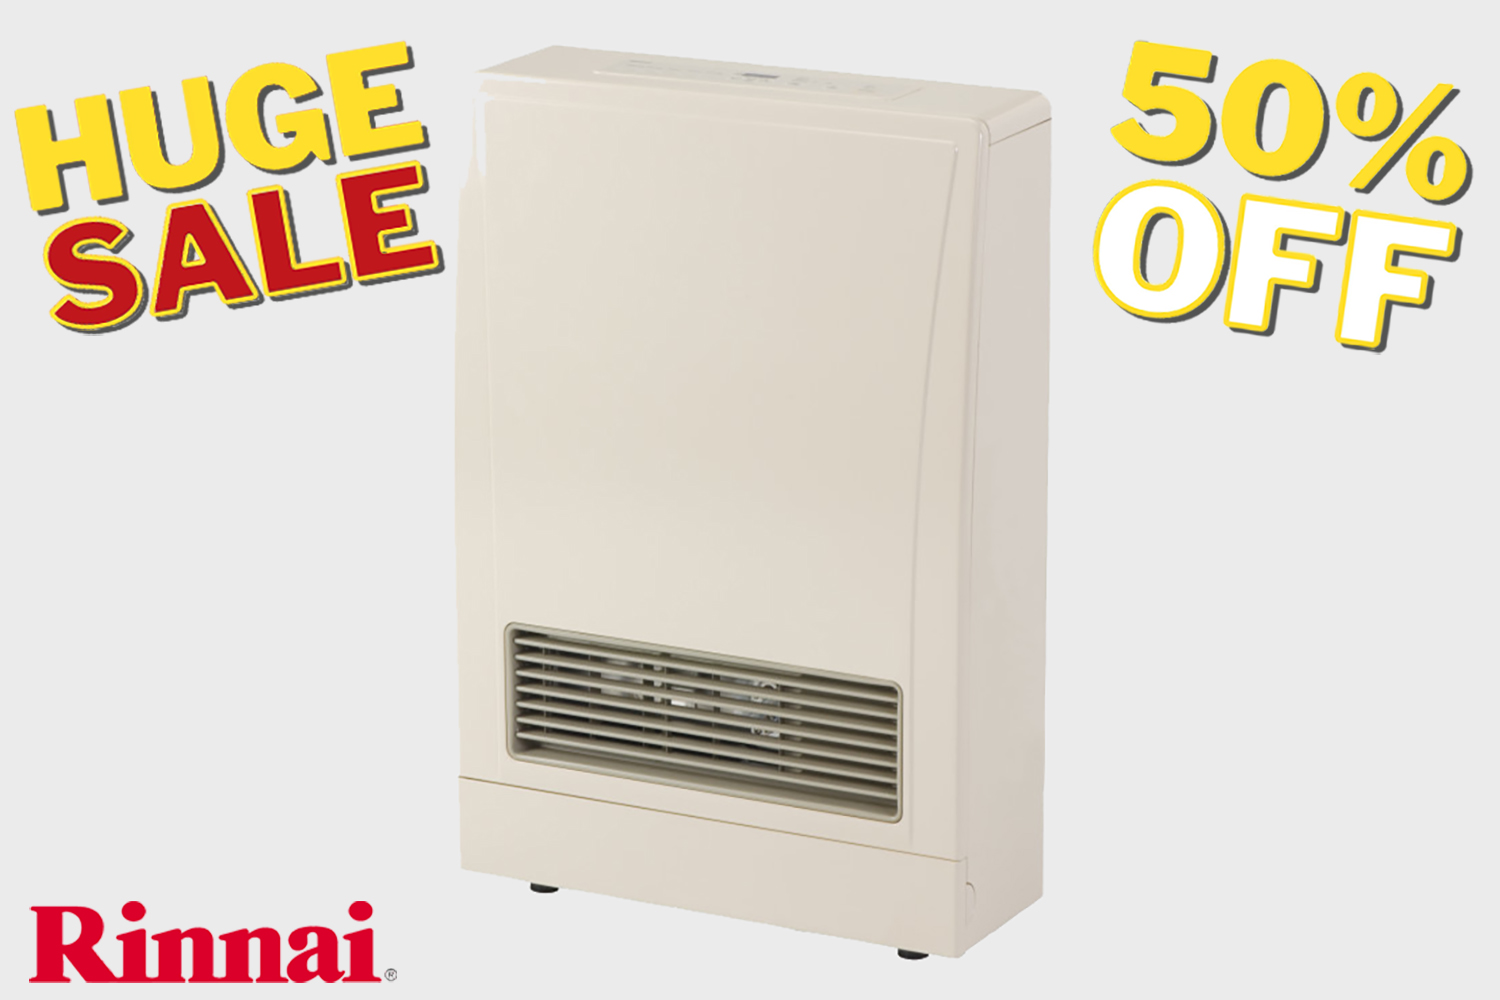 rinnai direct vent heater deal